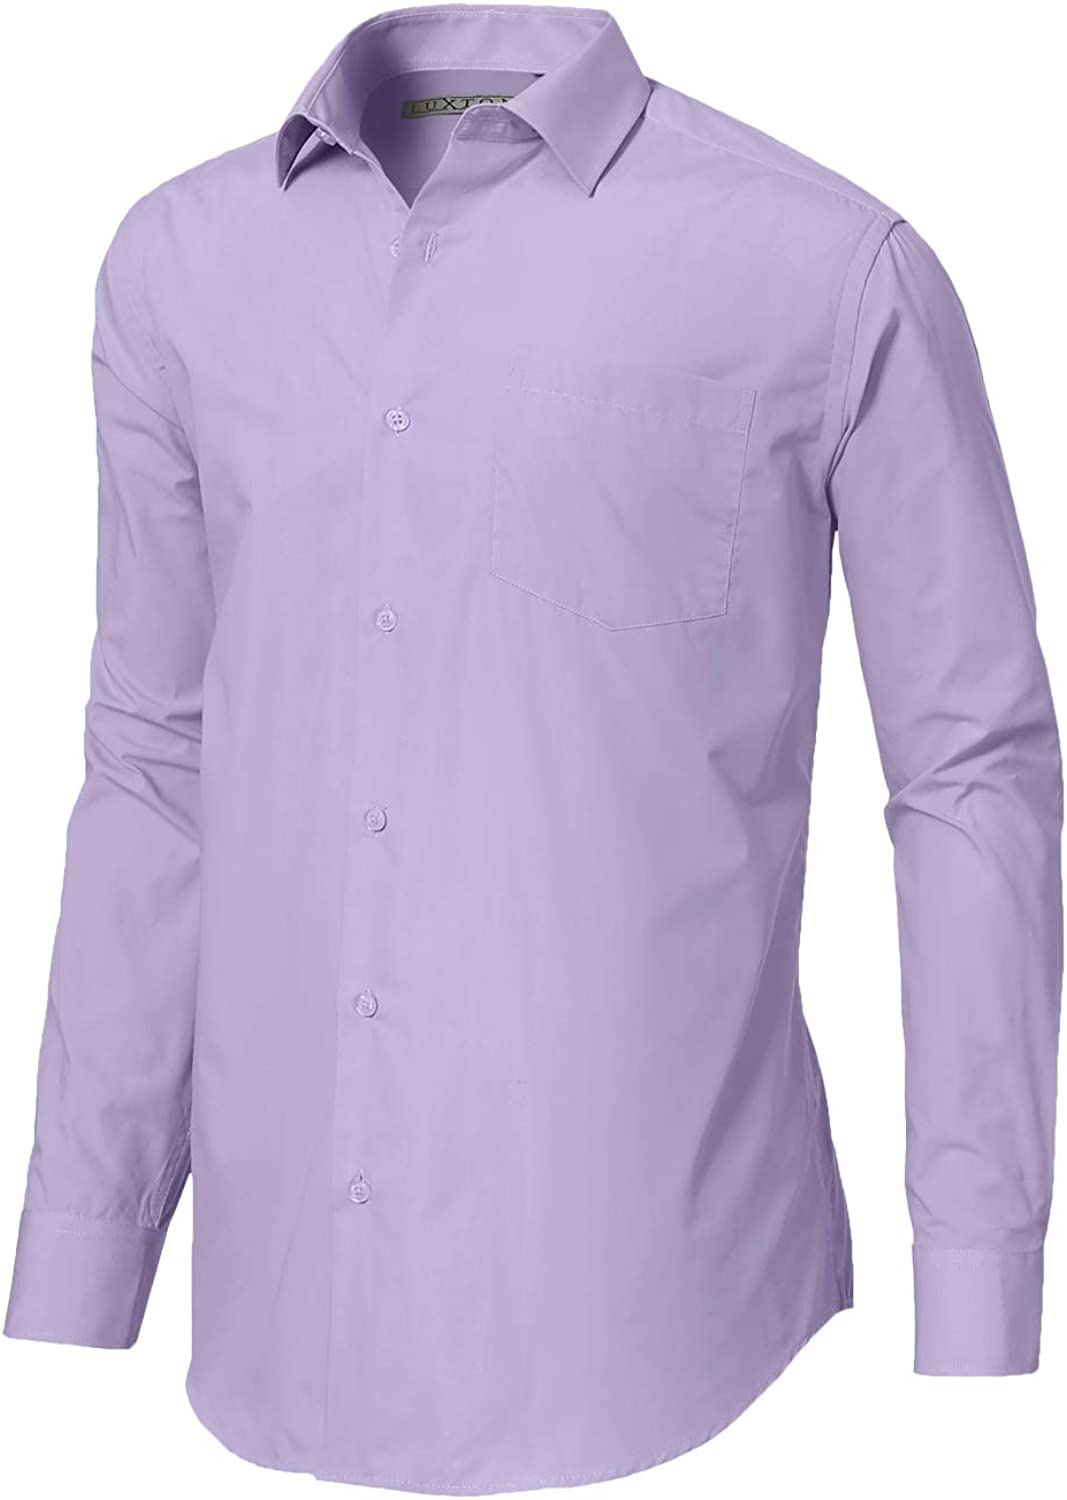 Luxton Men's Regular Fit Long Sleeve Cotton Poly Dress Shirt – Available in More Colors